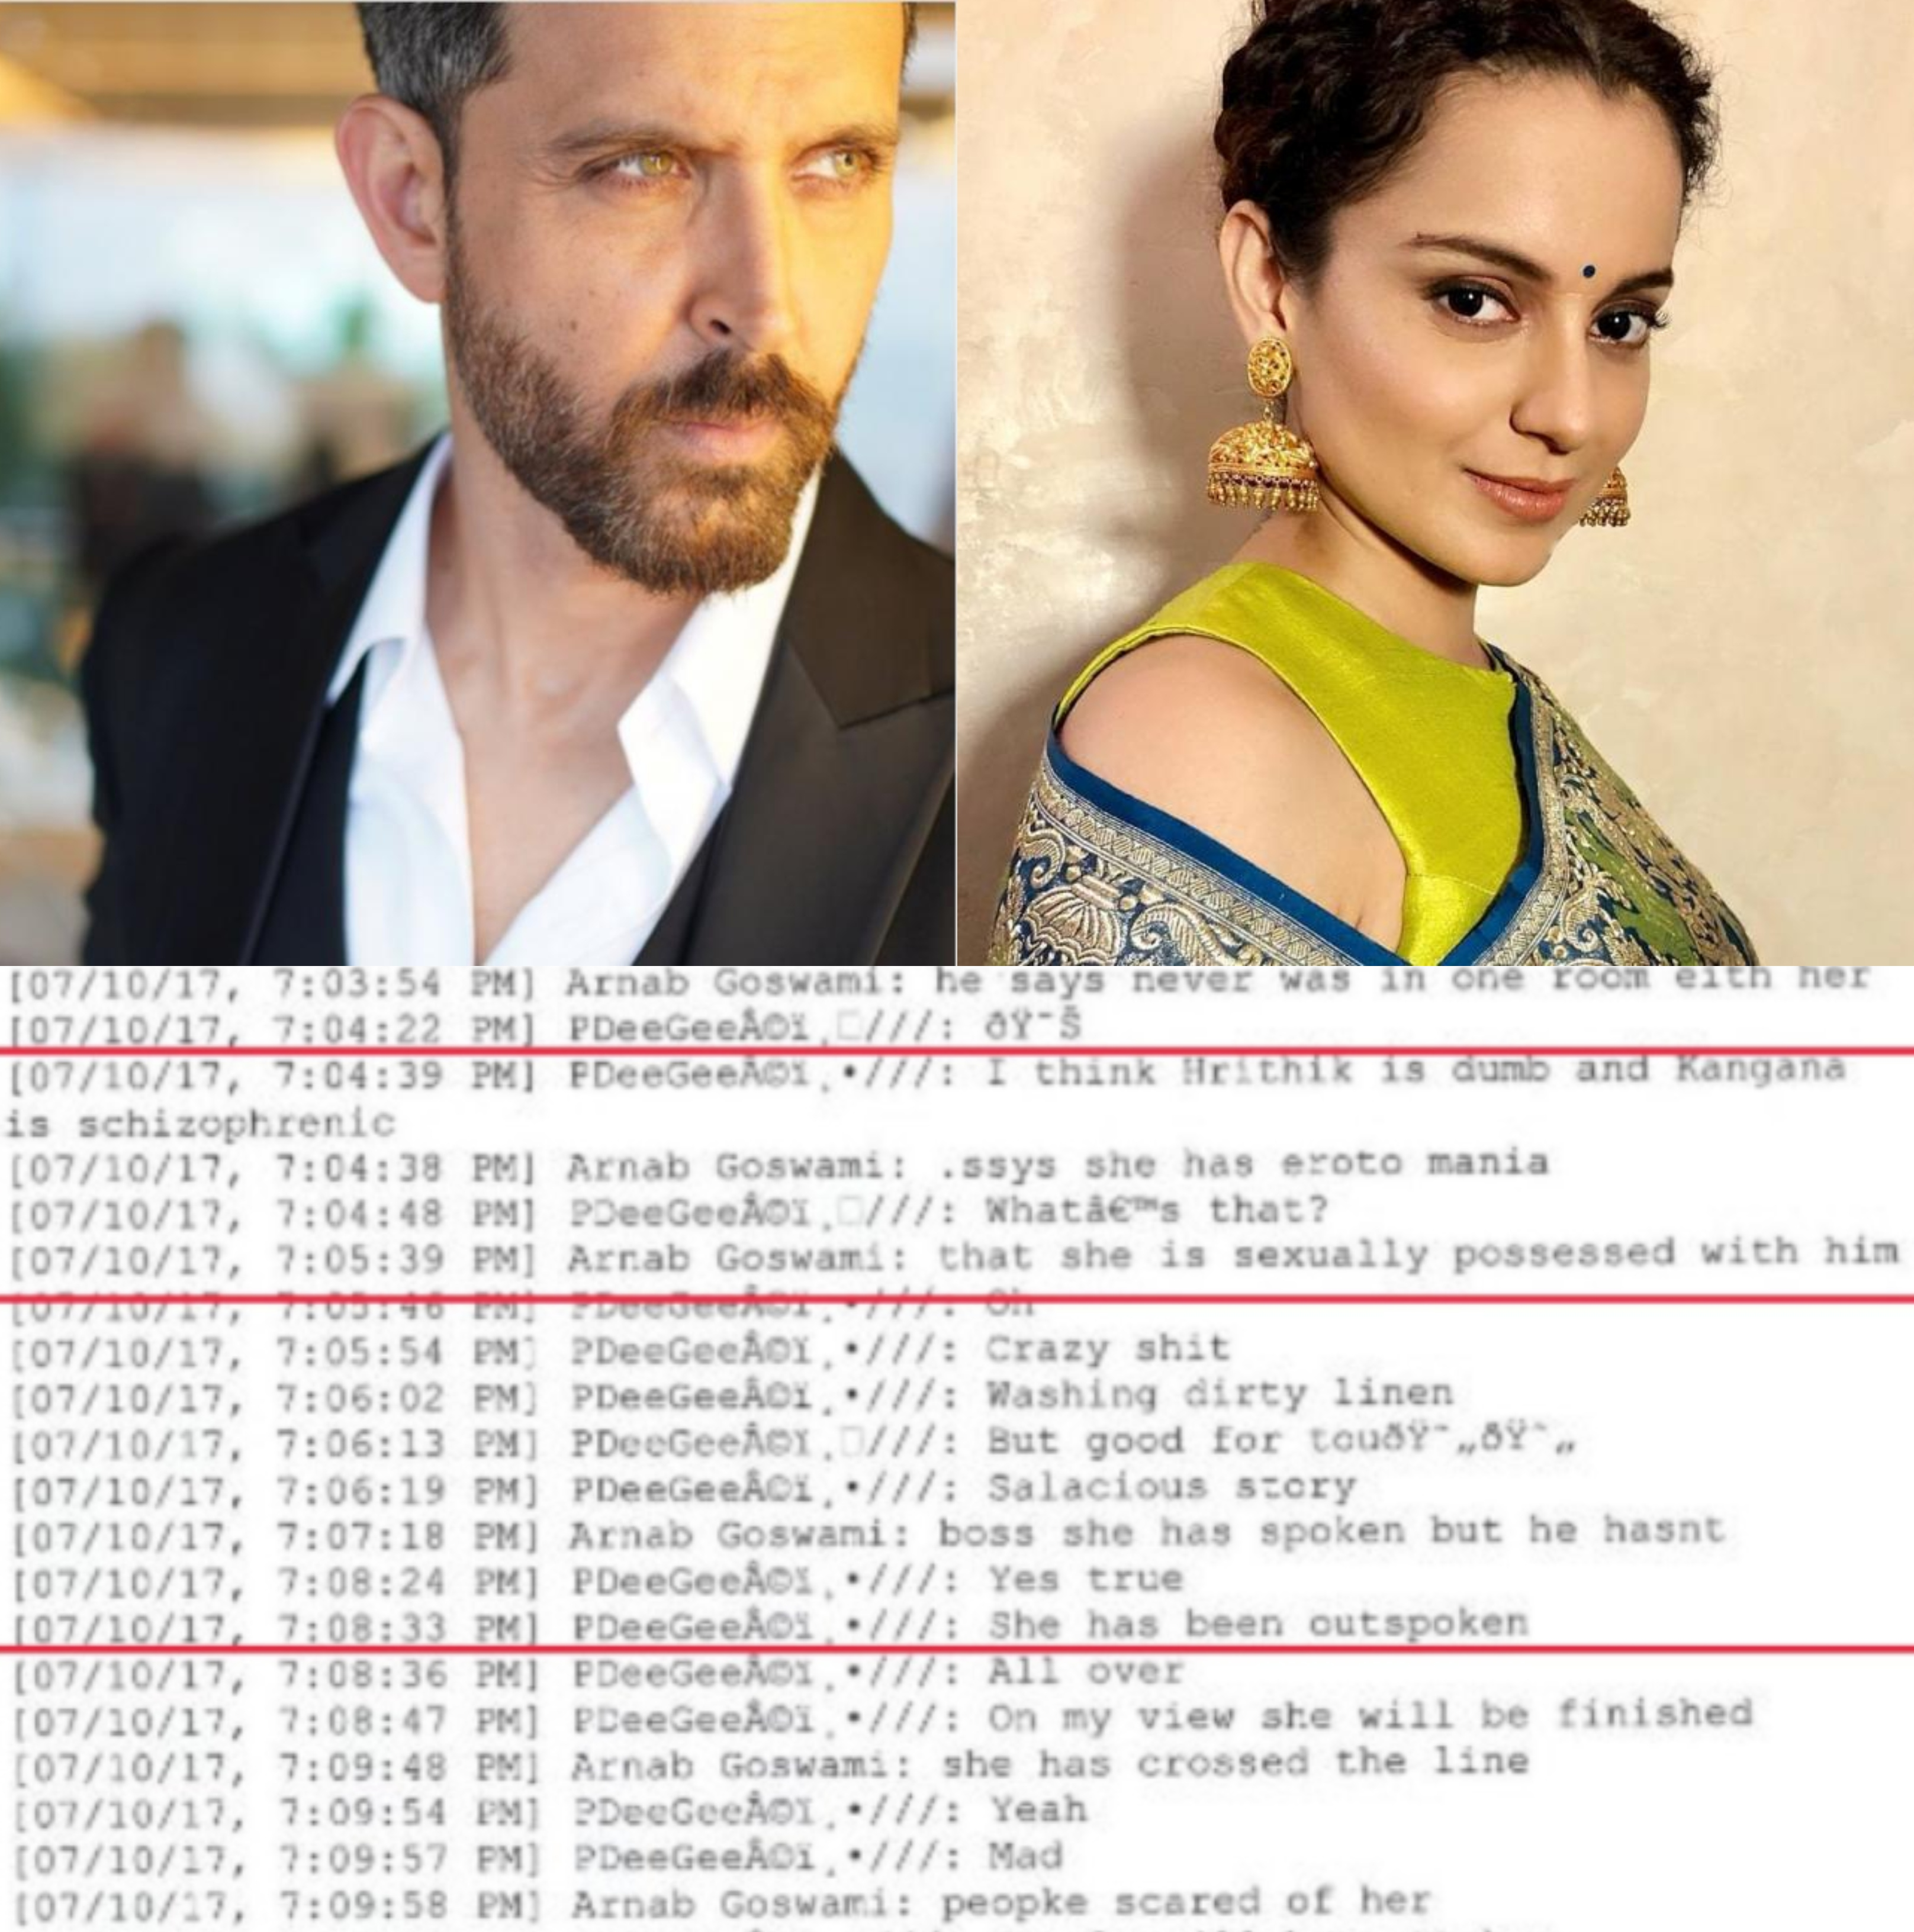 """Hrithik is Dumb, Kangana is sexually possessed with him"""", Arnab Goswami reveals in leaked whatsapp chats 